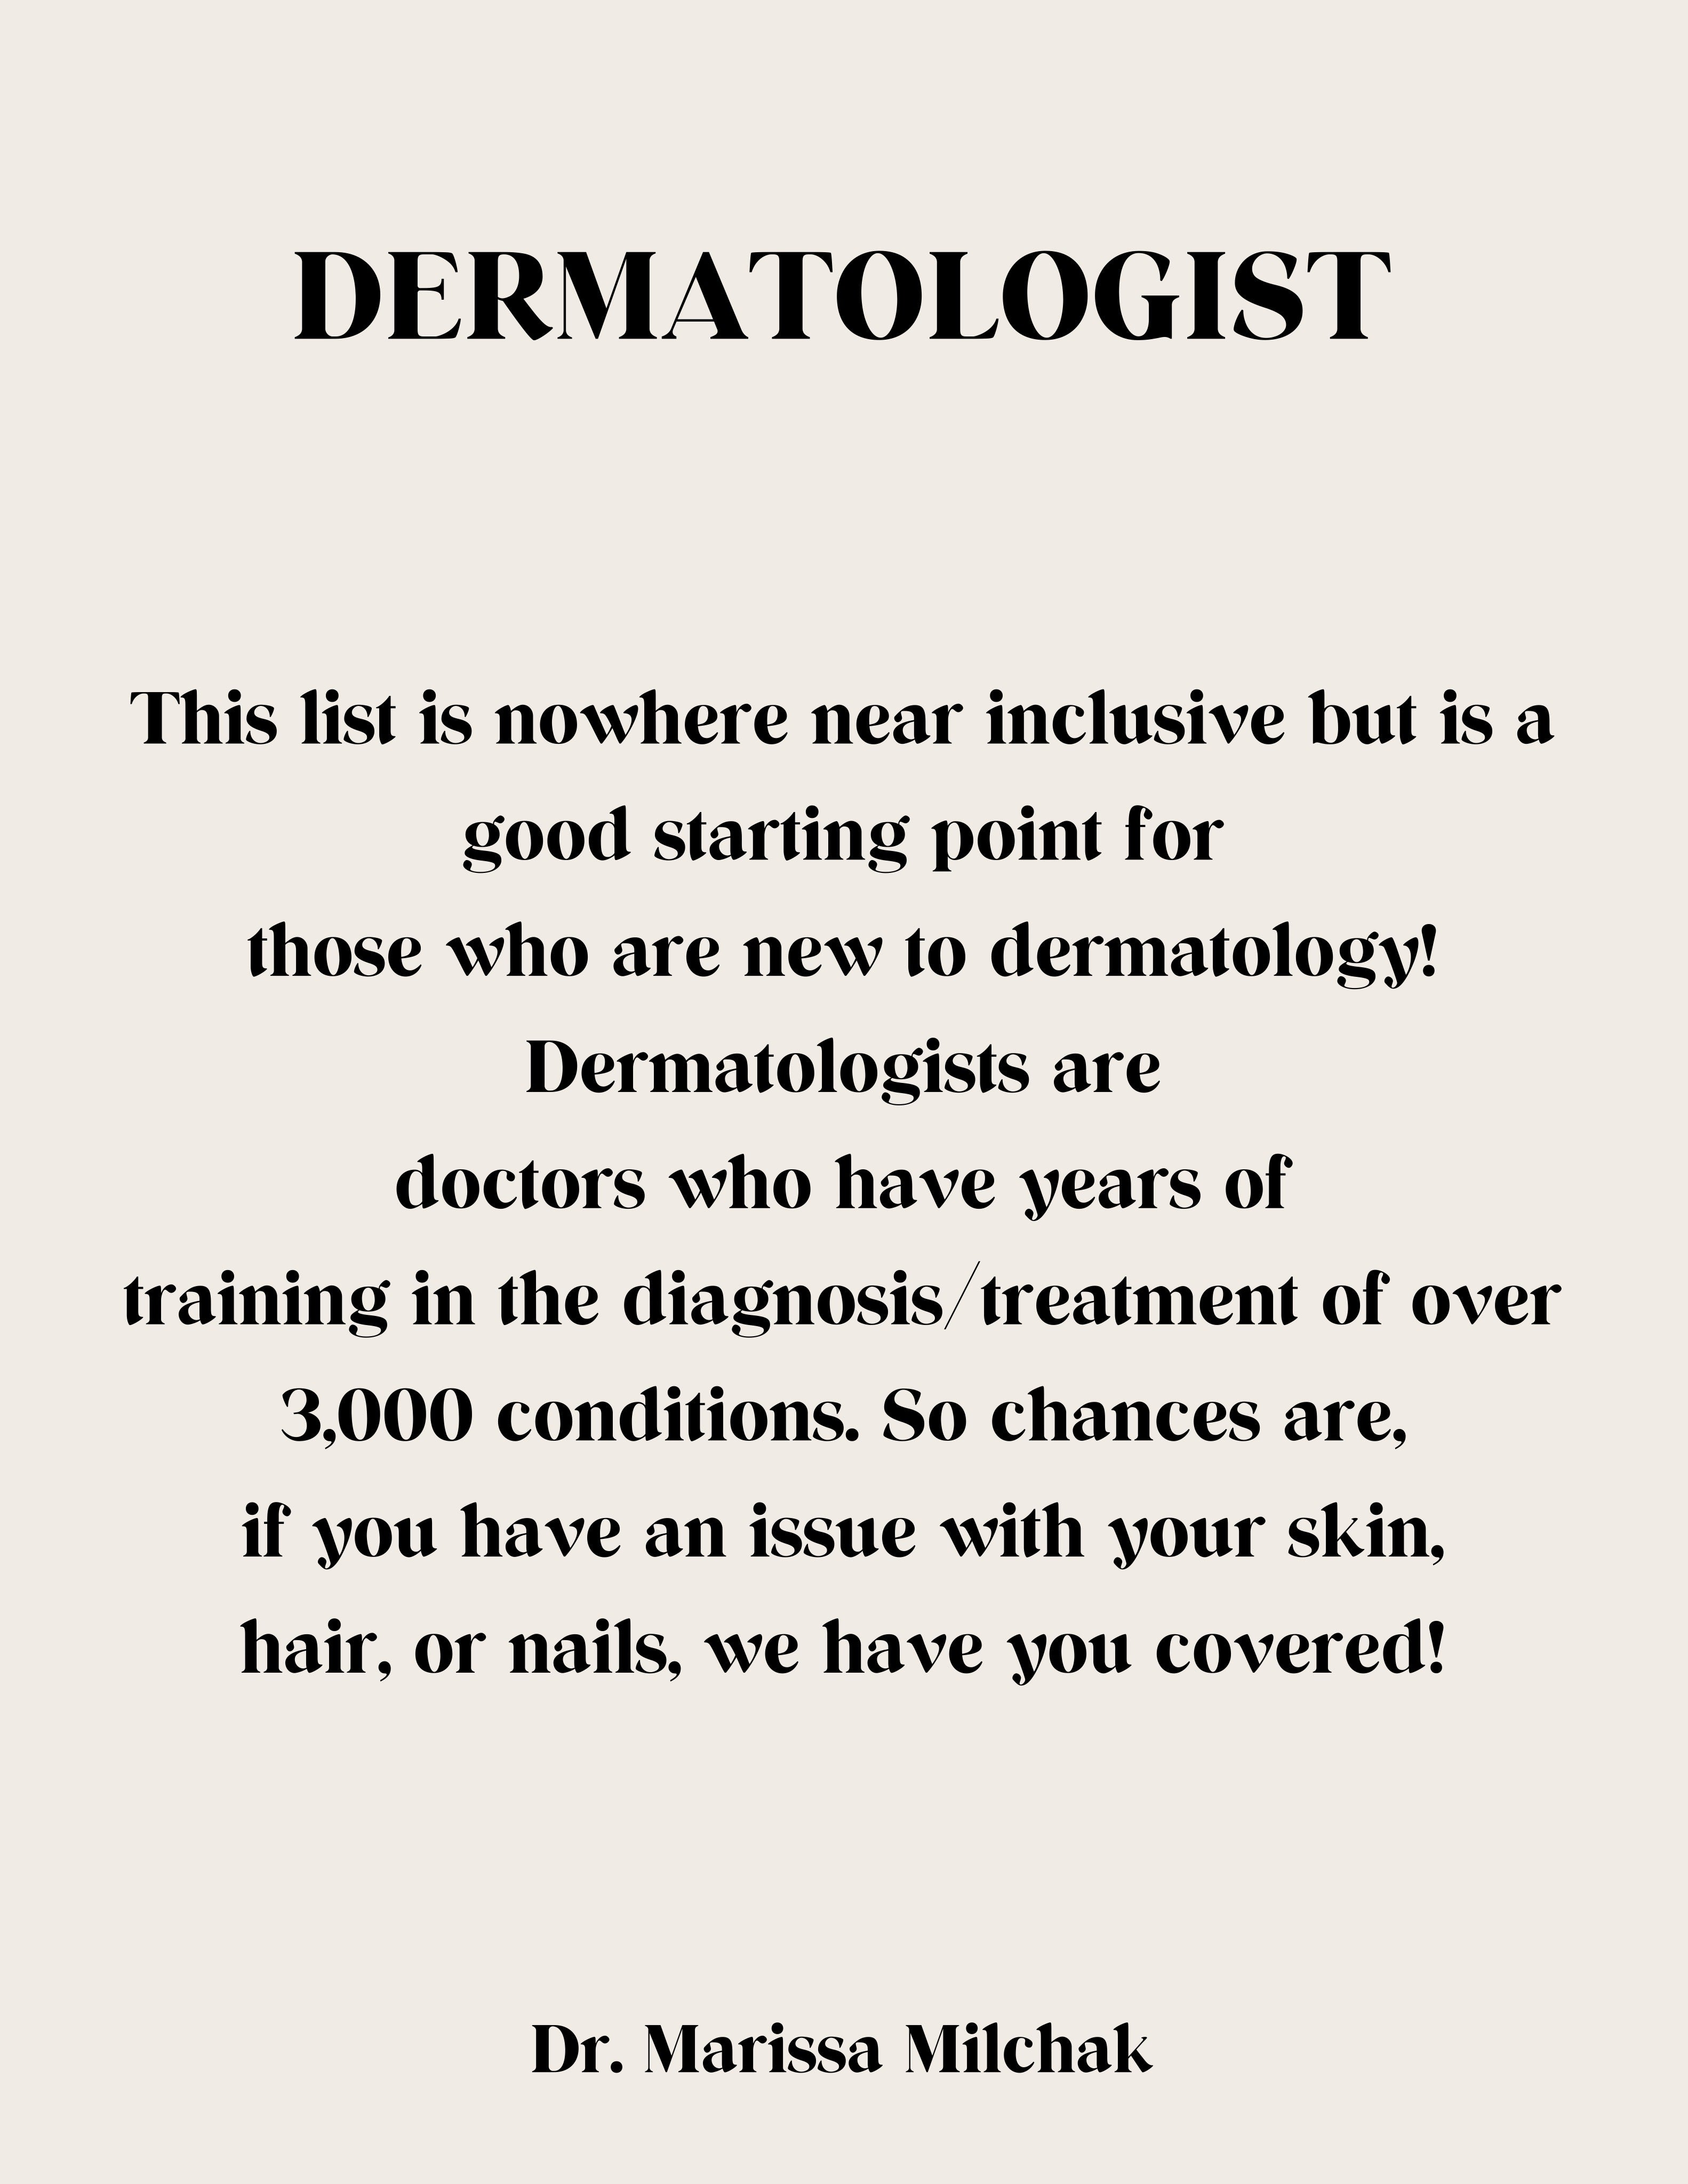 As your body's first line of defense, your skin takes a lot of hits. Not only is it the largest organ in your body, but your skin also protects you from germs; repels water; and covers your blood vessels, nerves, and organs. If you aren't feeling good about the skin you're in or are worried about something on your skin, you should consider seeing a dermatologist.